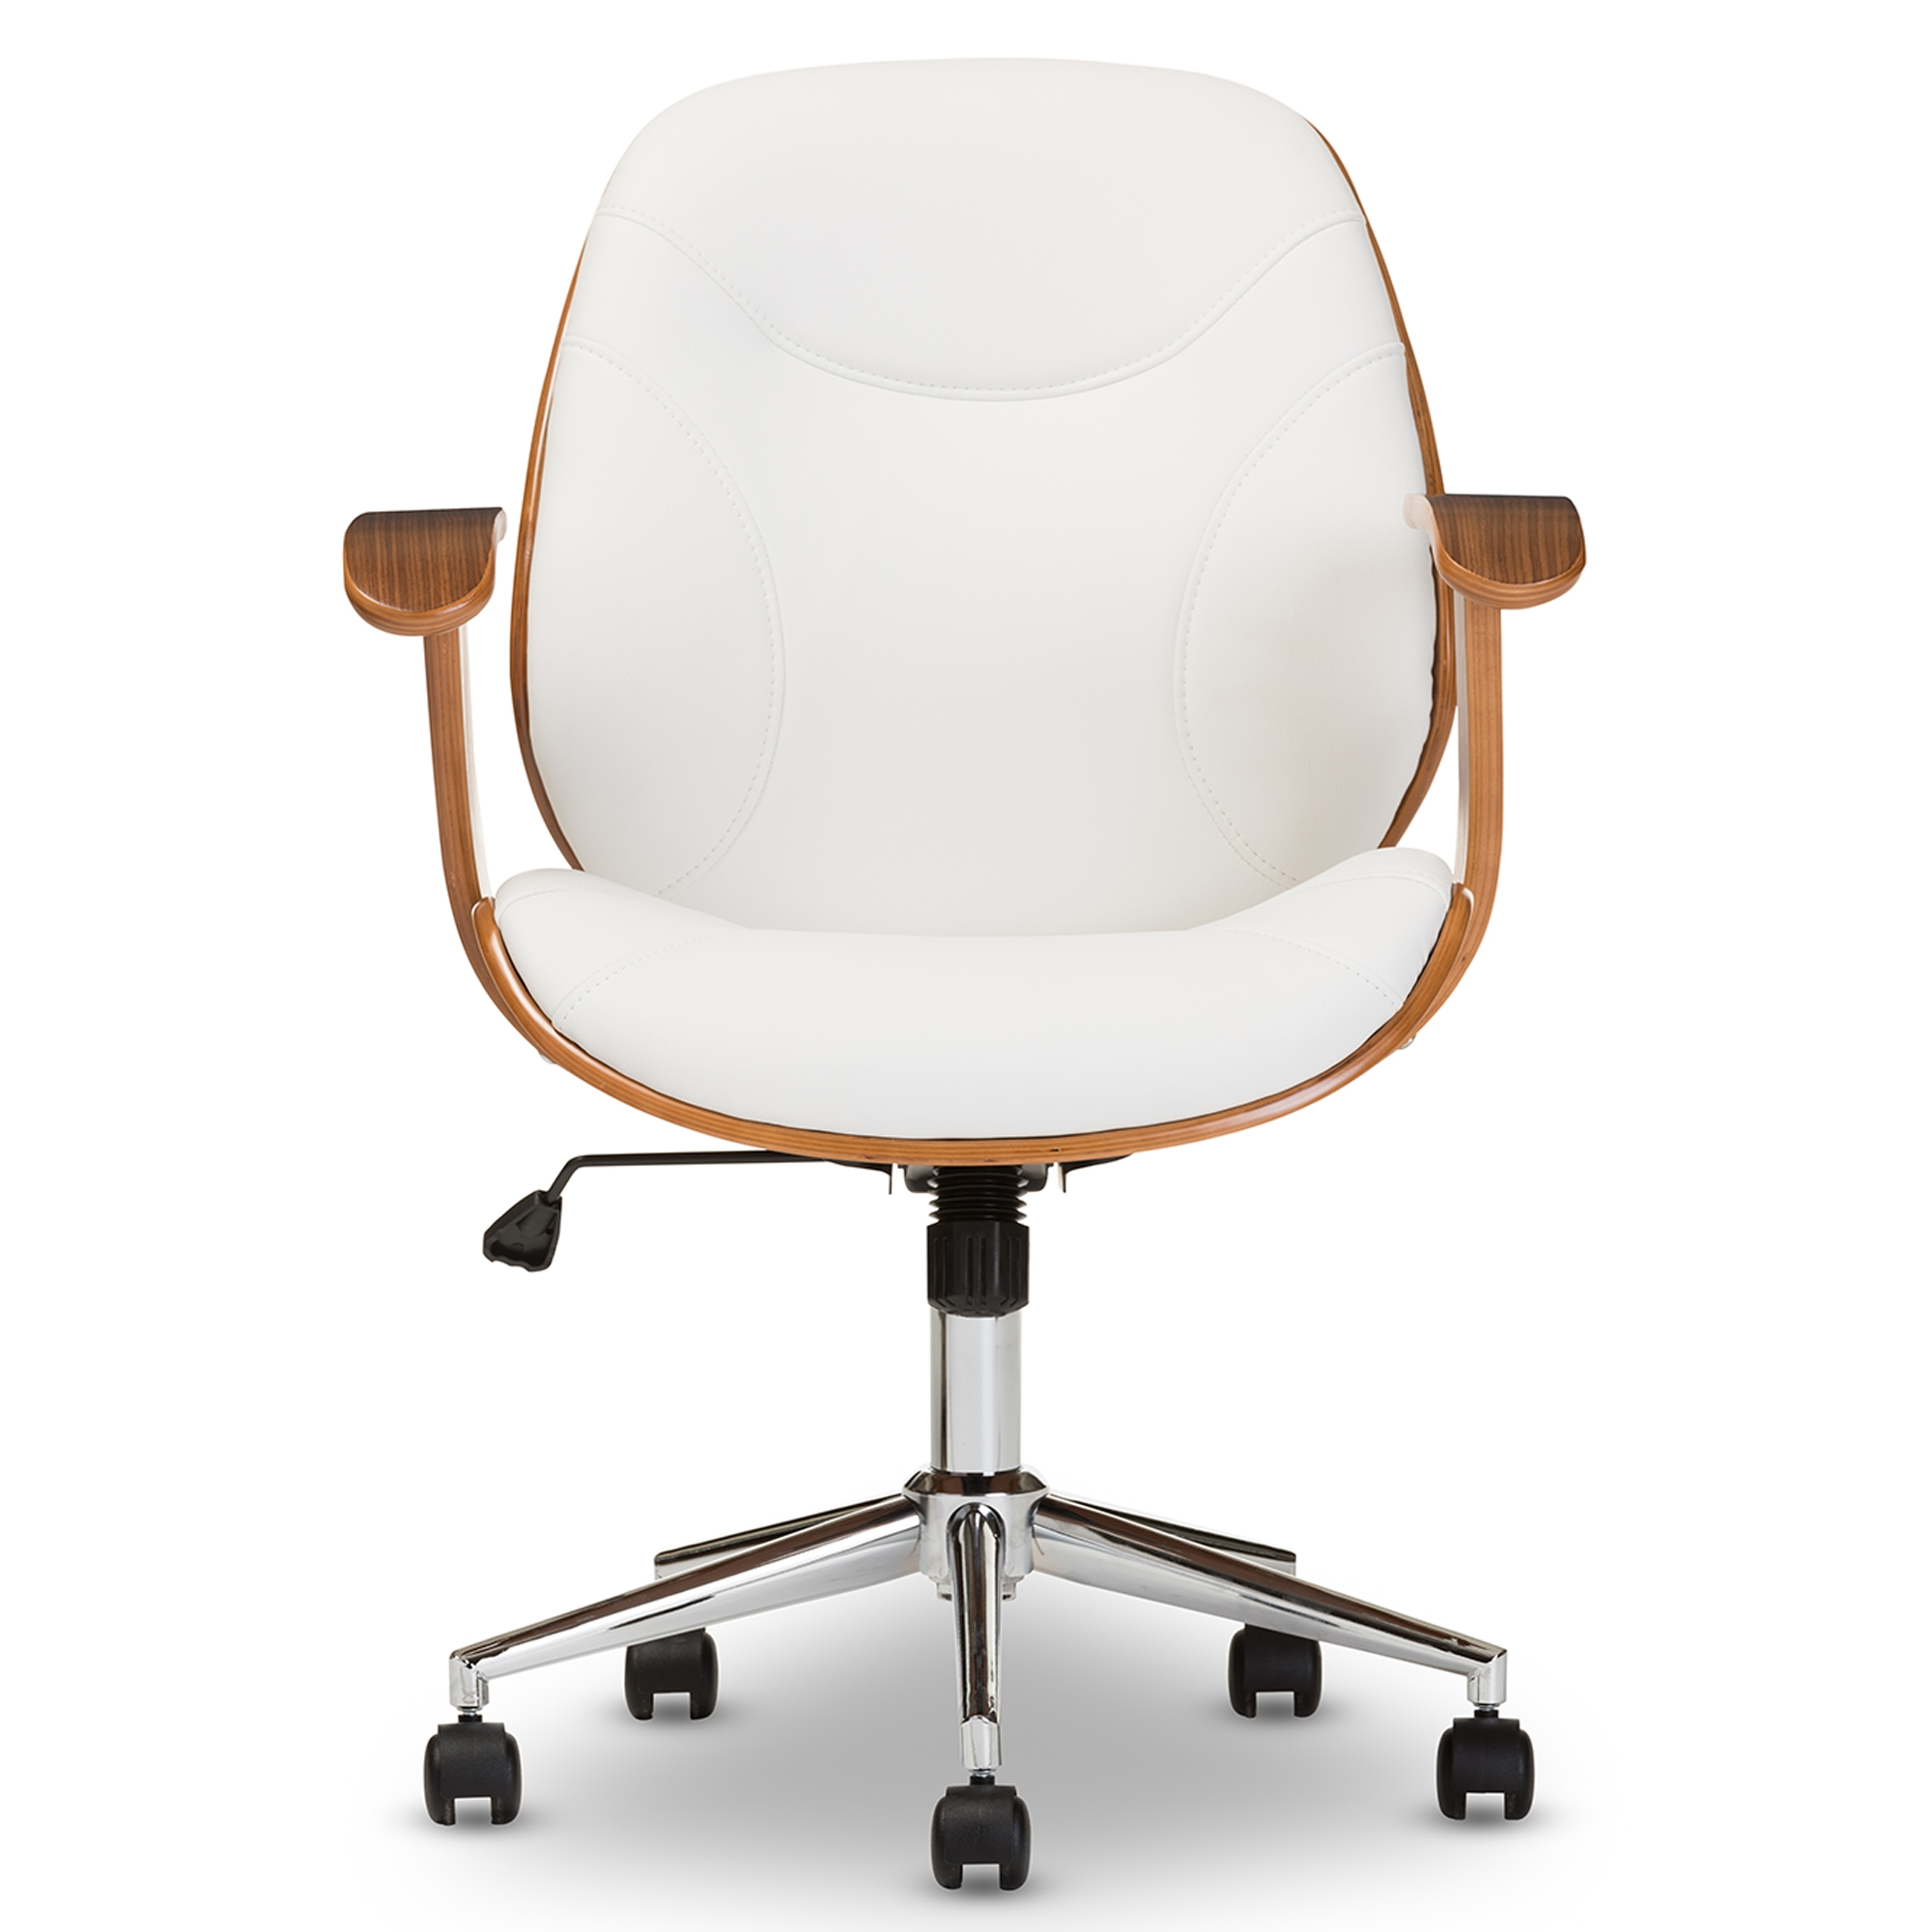 Ordinaire Baxton Studio Rathburn Modern And Contemporary White And Walnut Office Chair    IESD 2235  ...